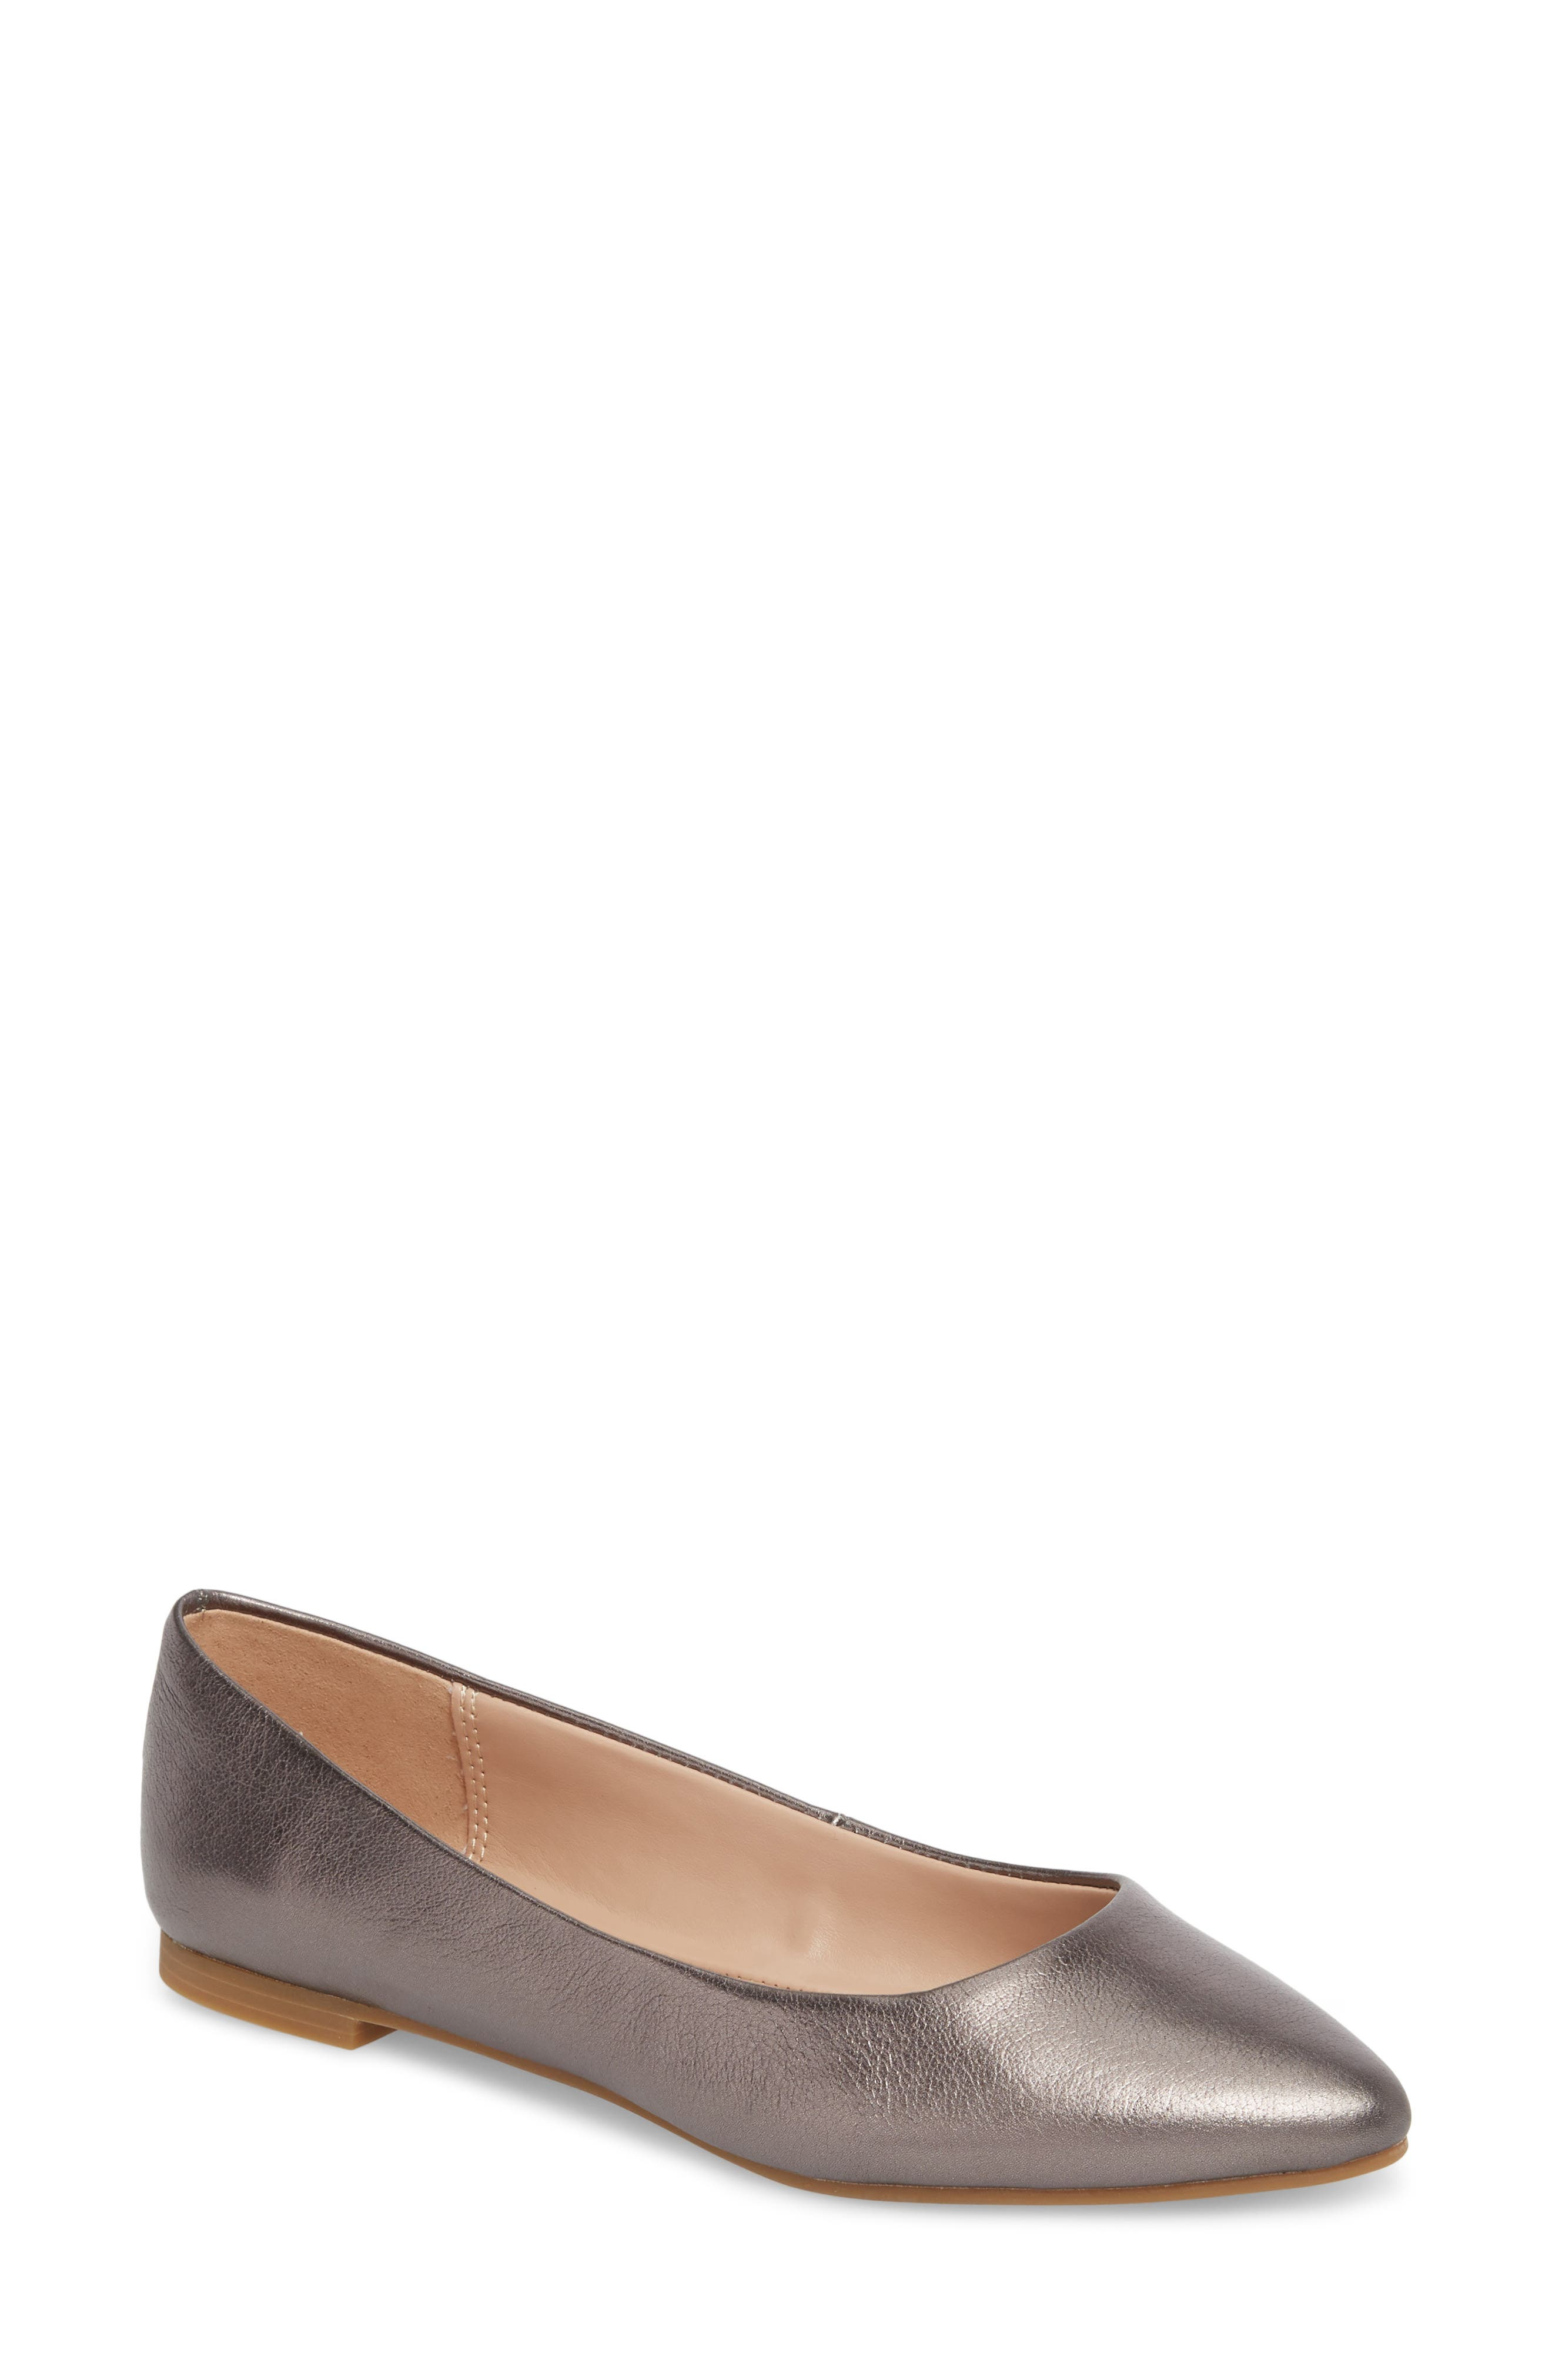 Millie Flat,                         Main,                         color, Gunmetal Leather